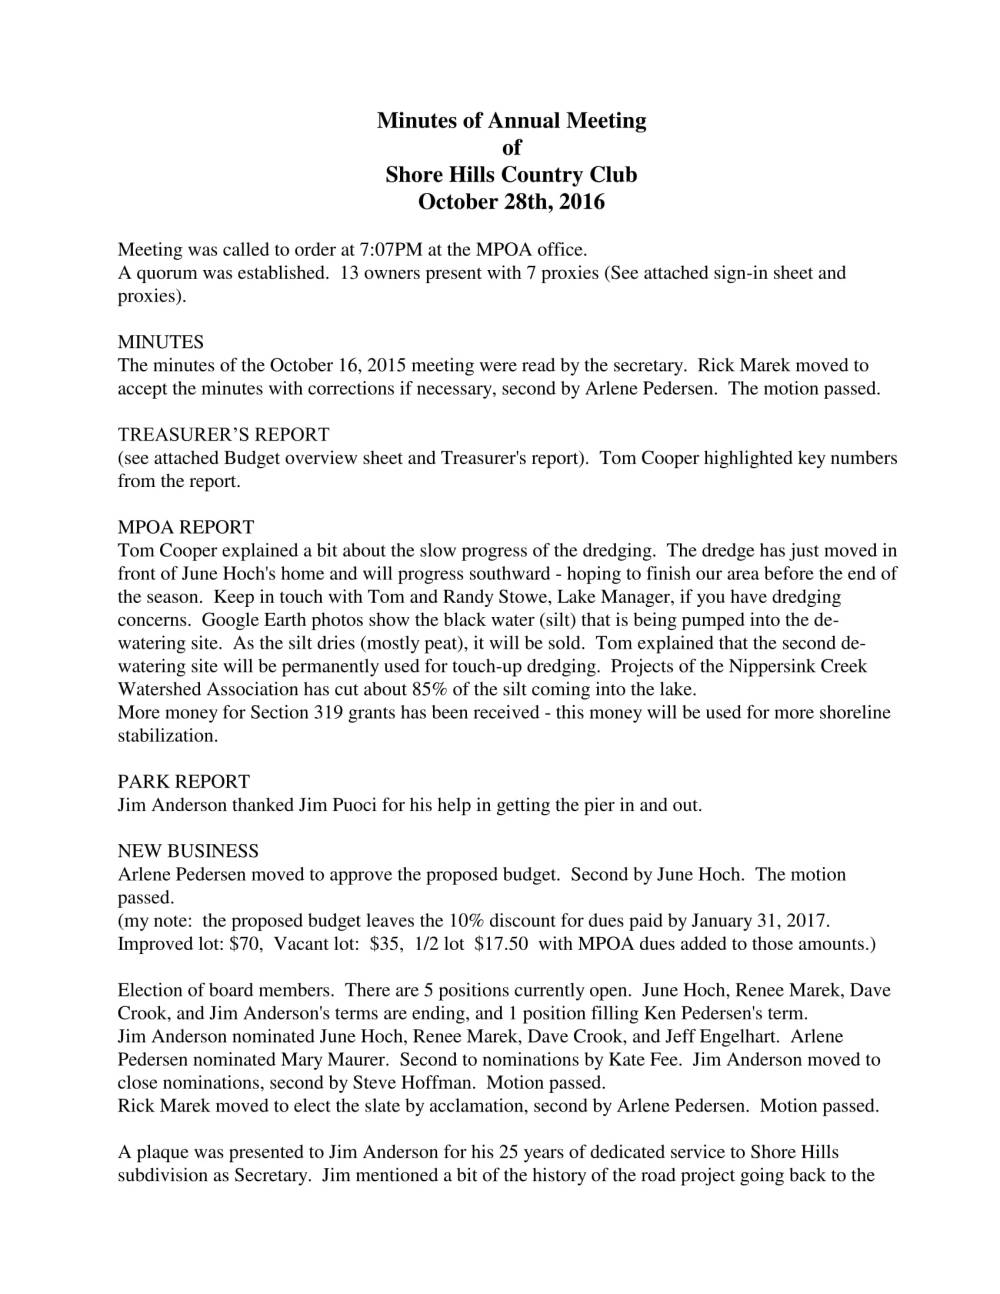 Shore Hills Country Club - Minutes of Annual Meeting - 10-28-16-1